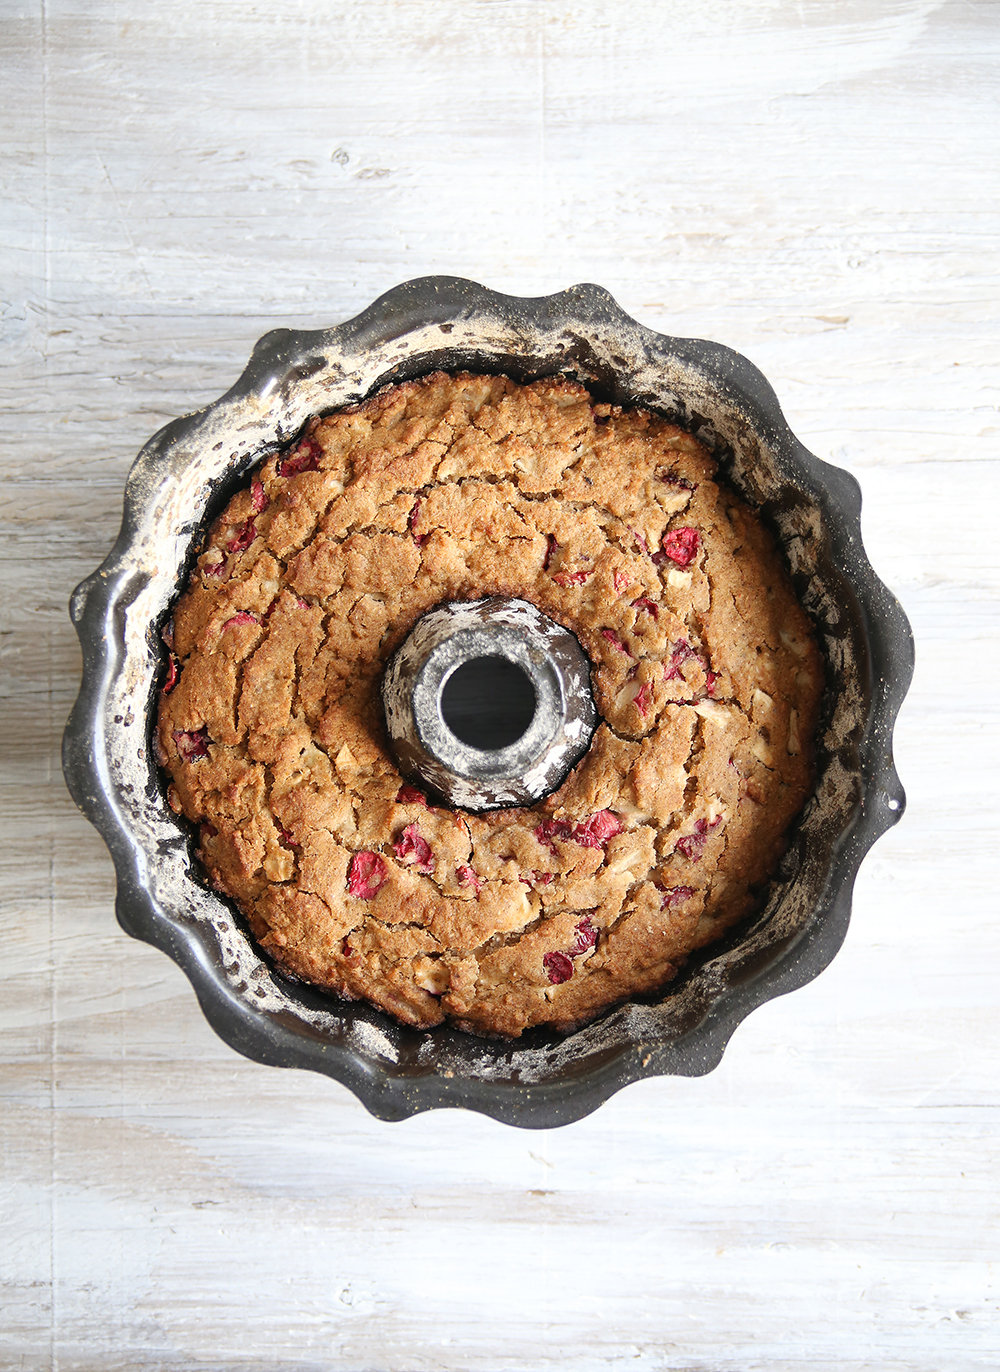 IMG_0614-Gluten-free-Vegan-Apple-Cranberry-Bundt-Cake4